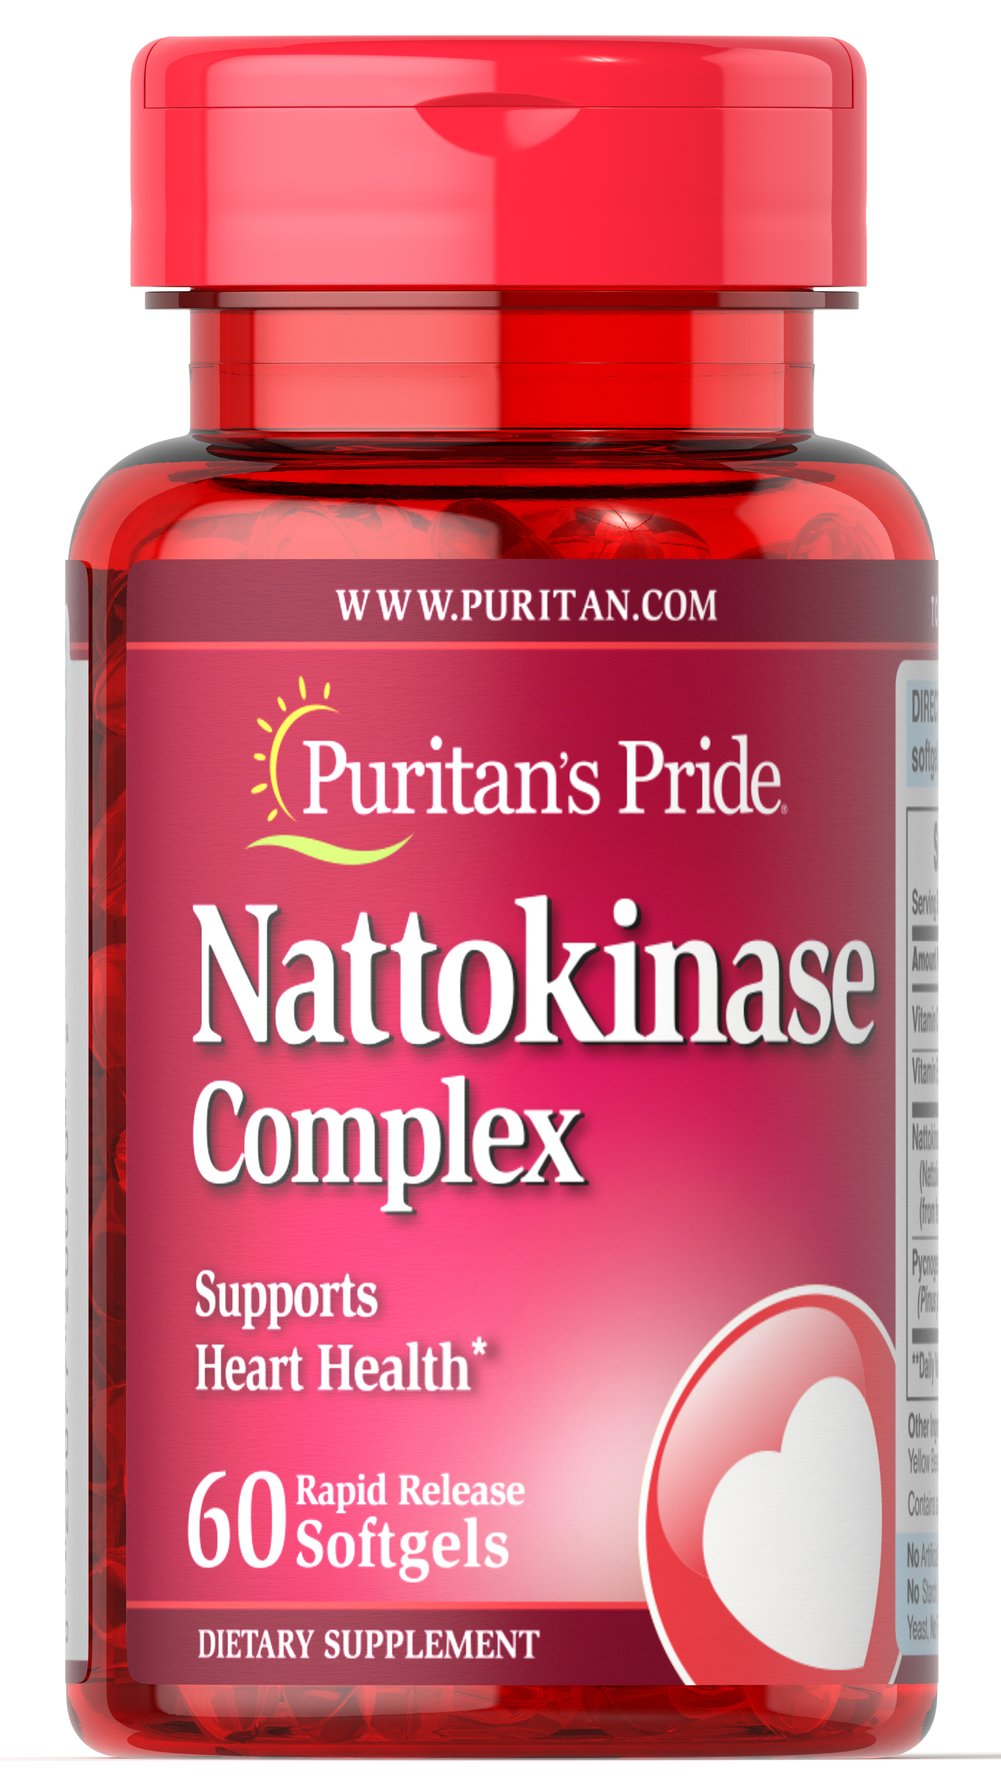 Nattokinase 100 mg Complex  60 Softgels 100 mg $47.99